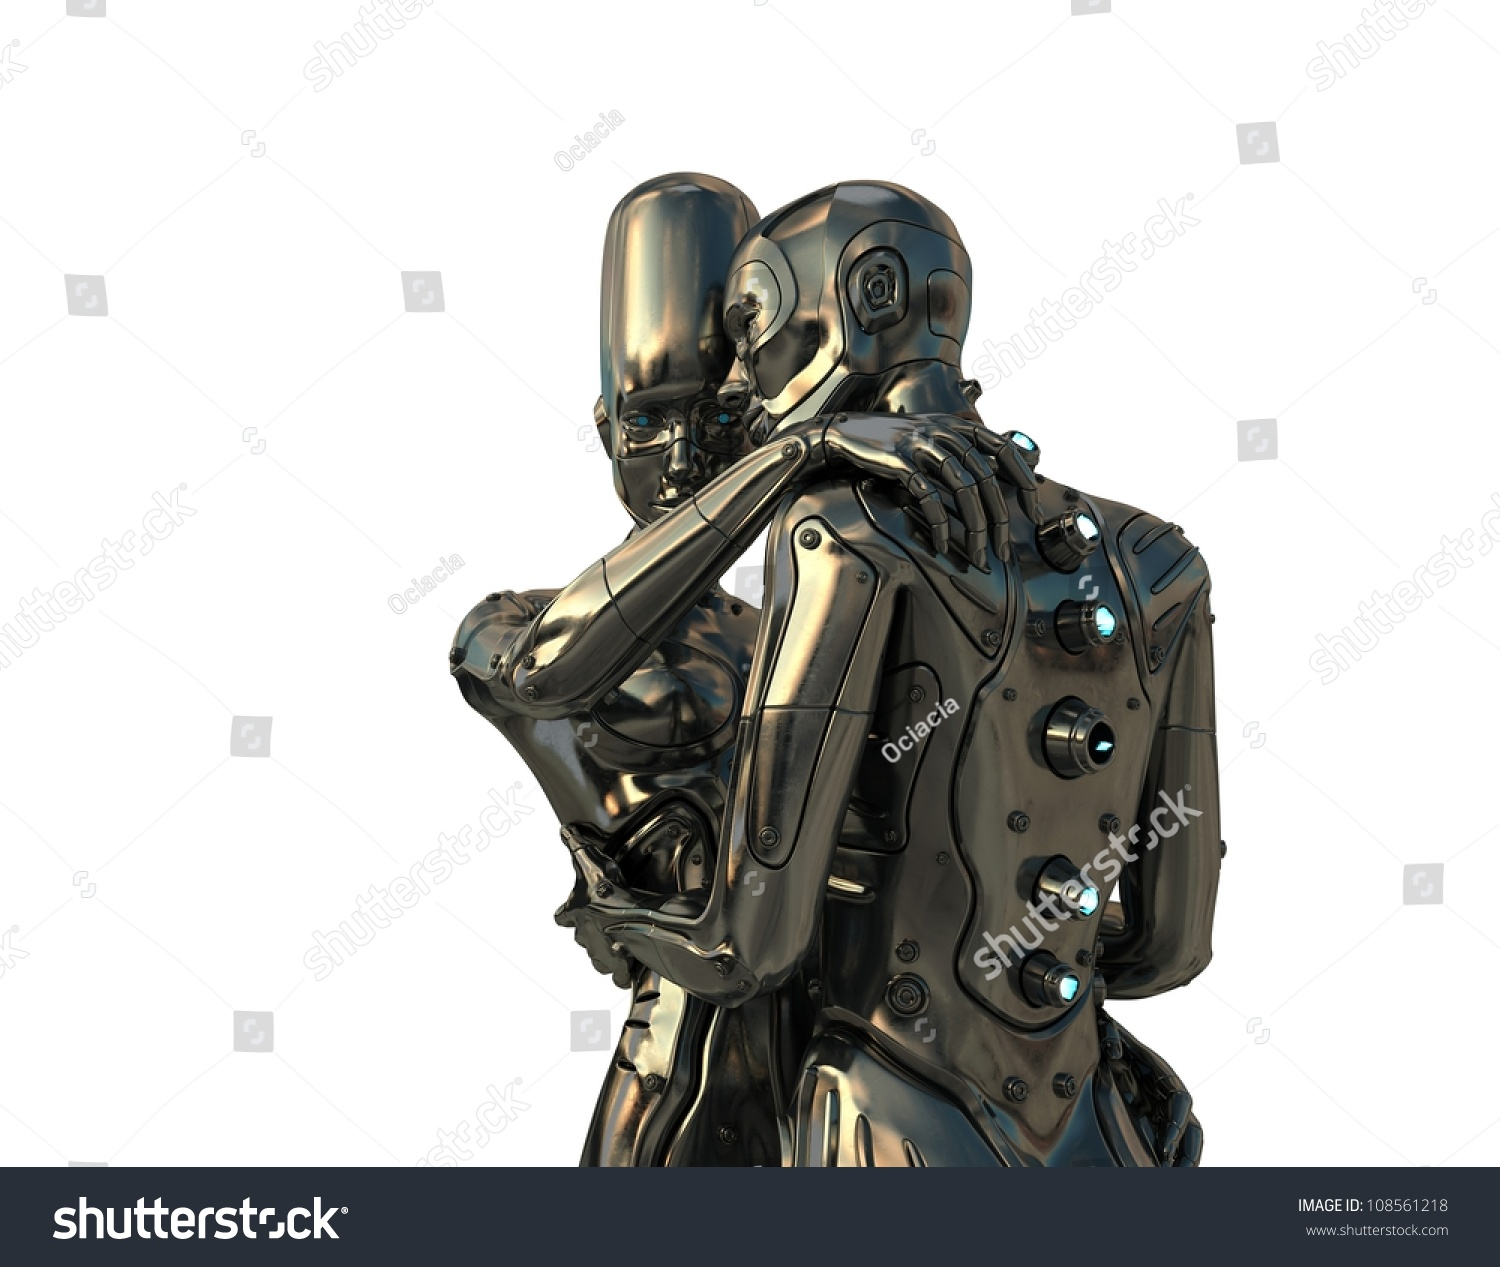 dating robots in the future